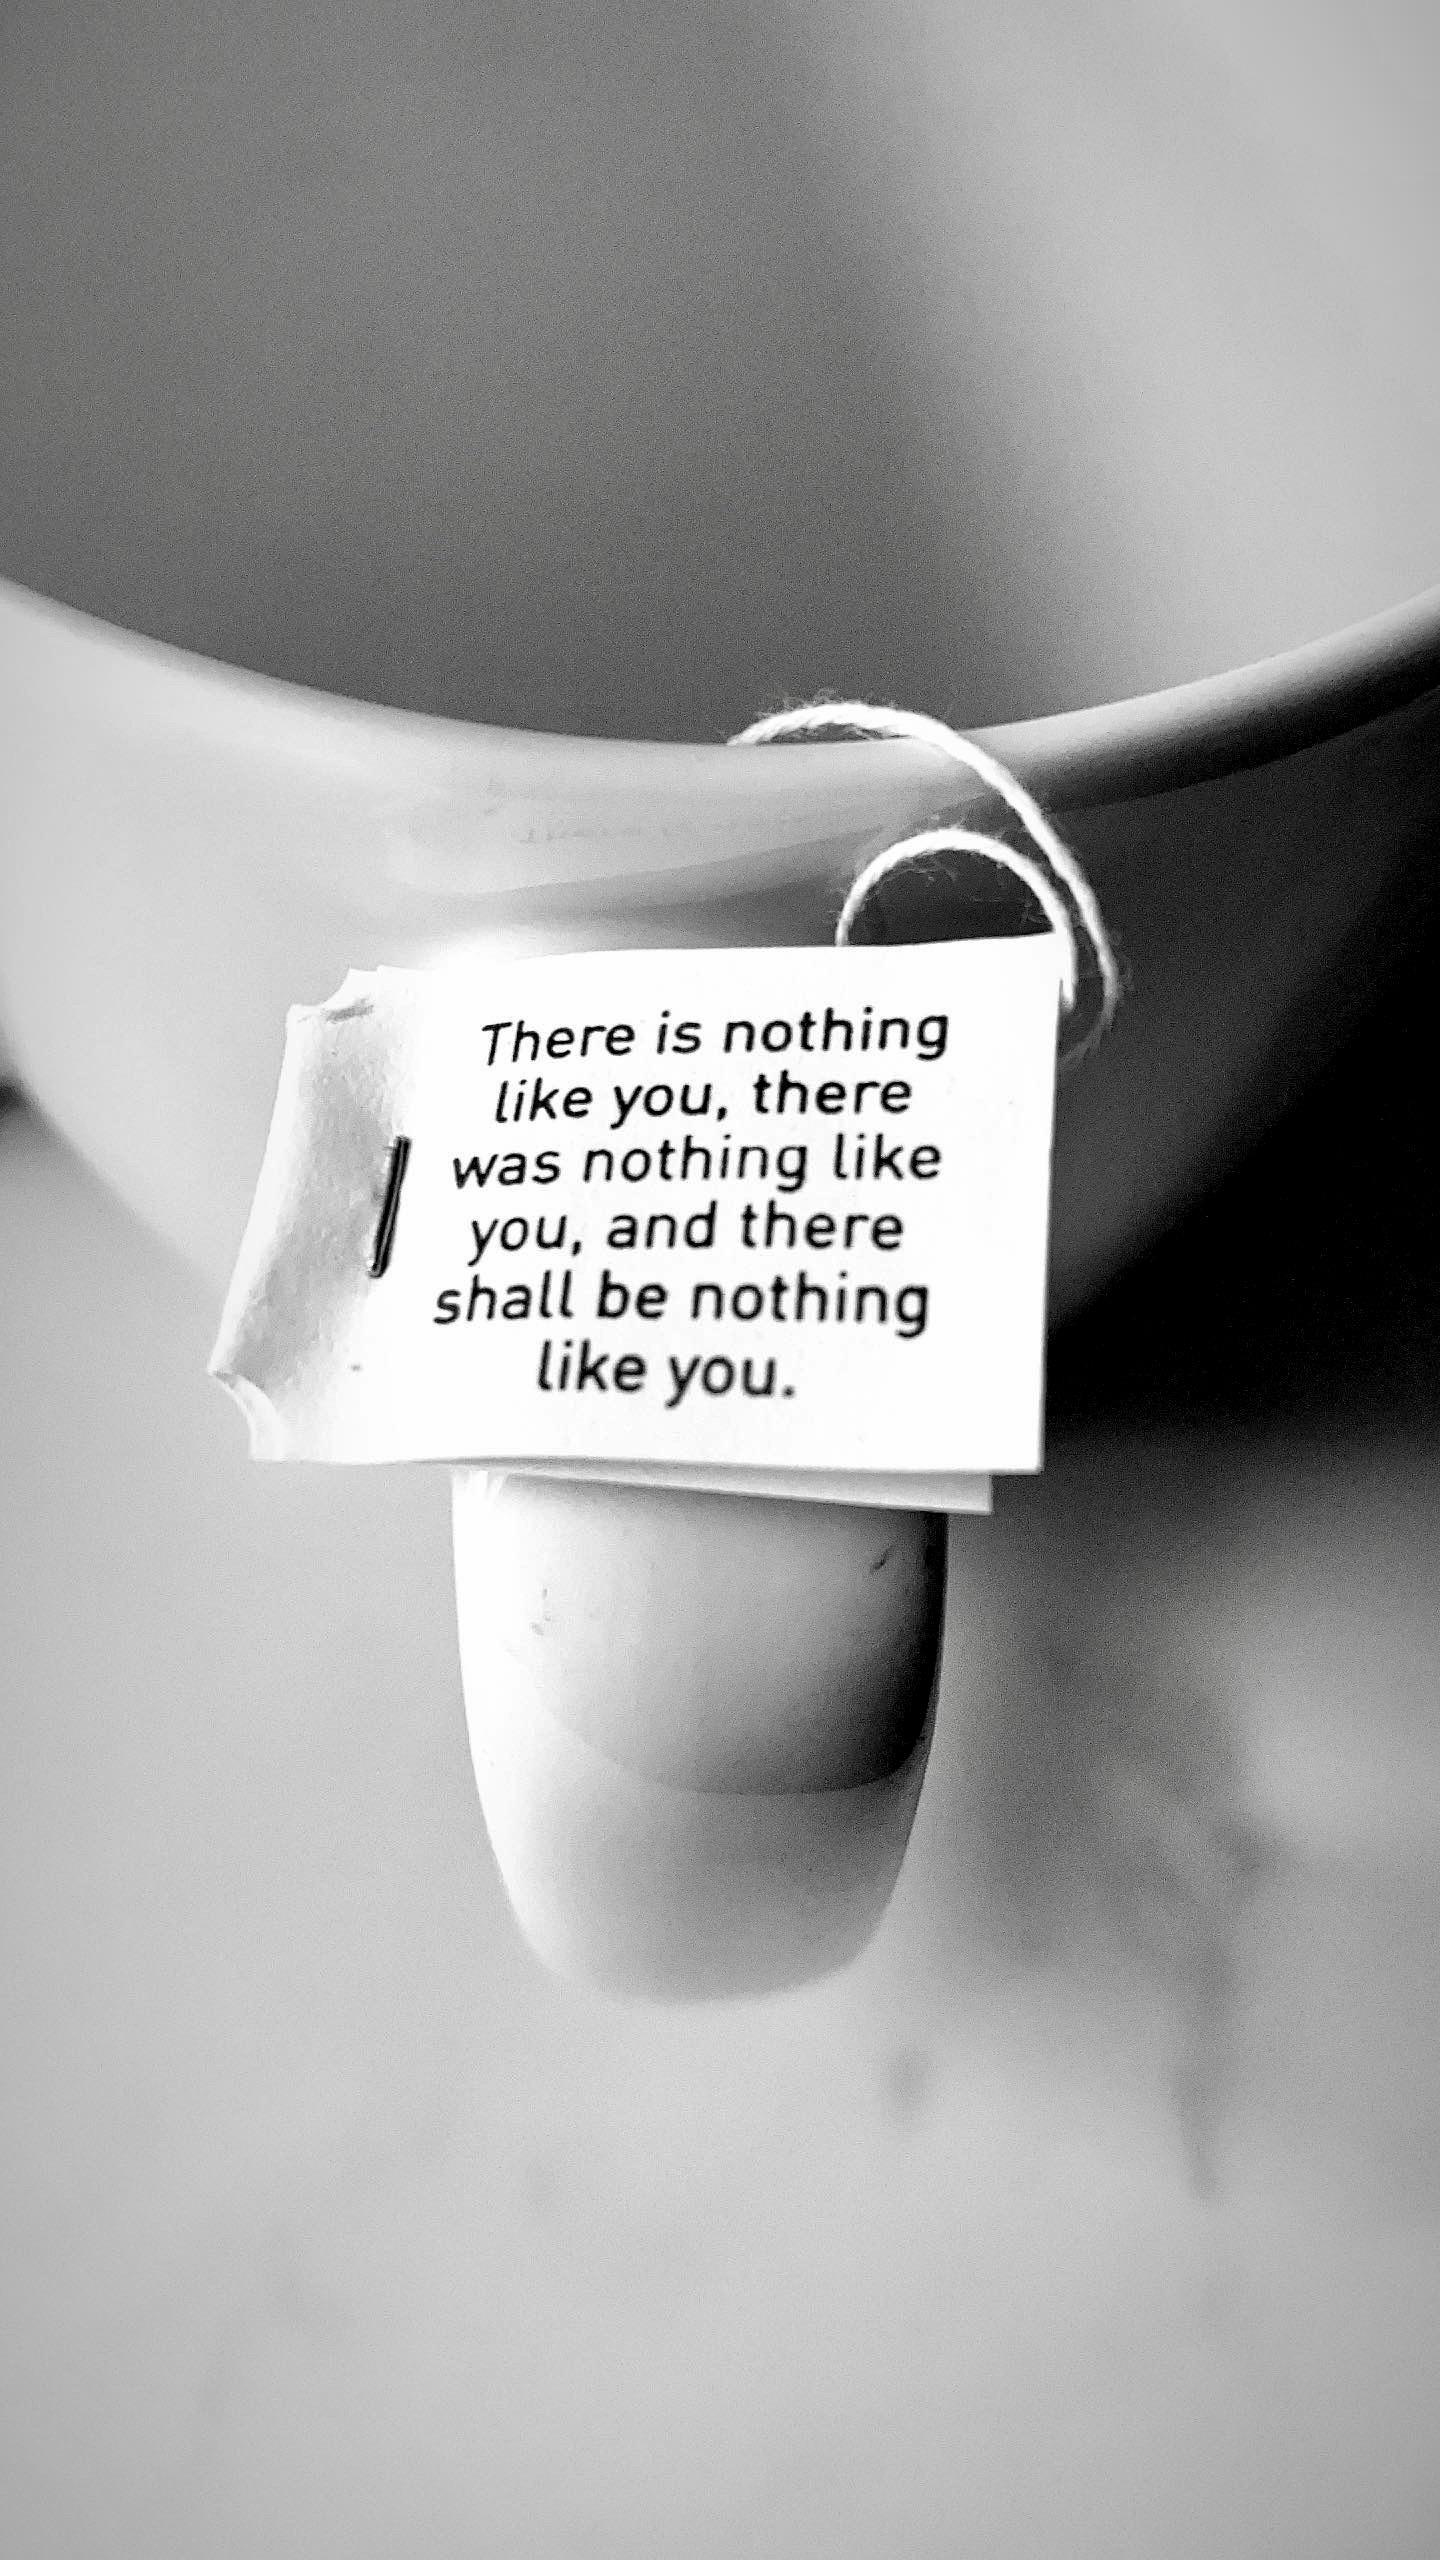 [image] There is nothing like you.